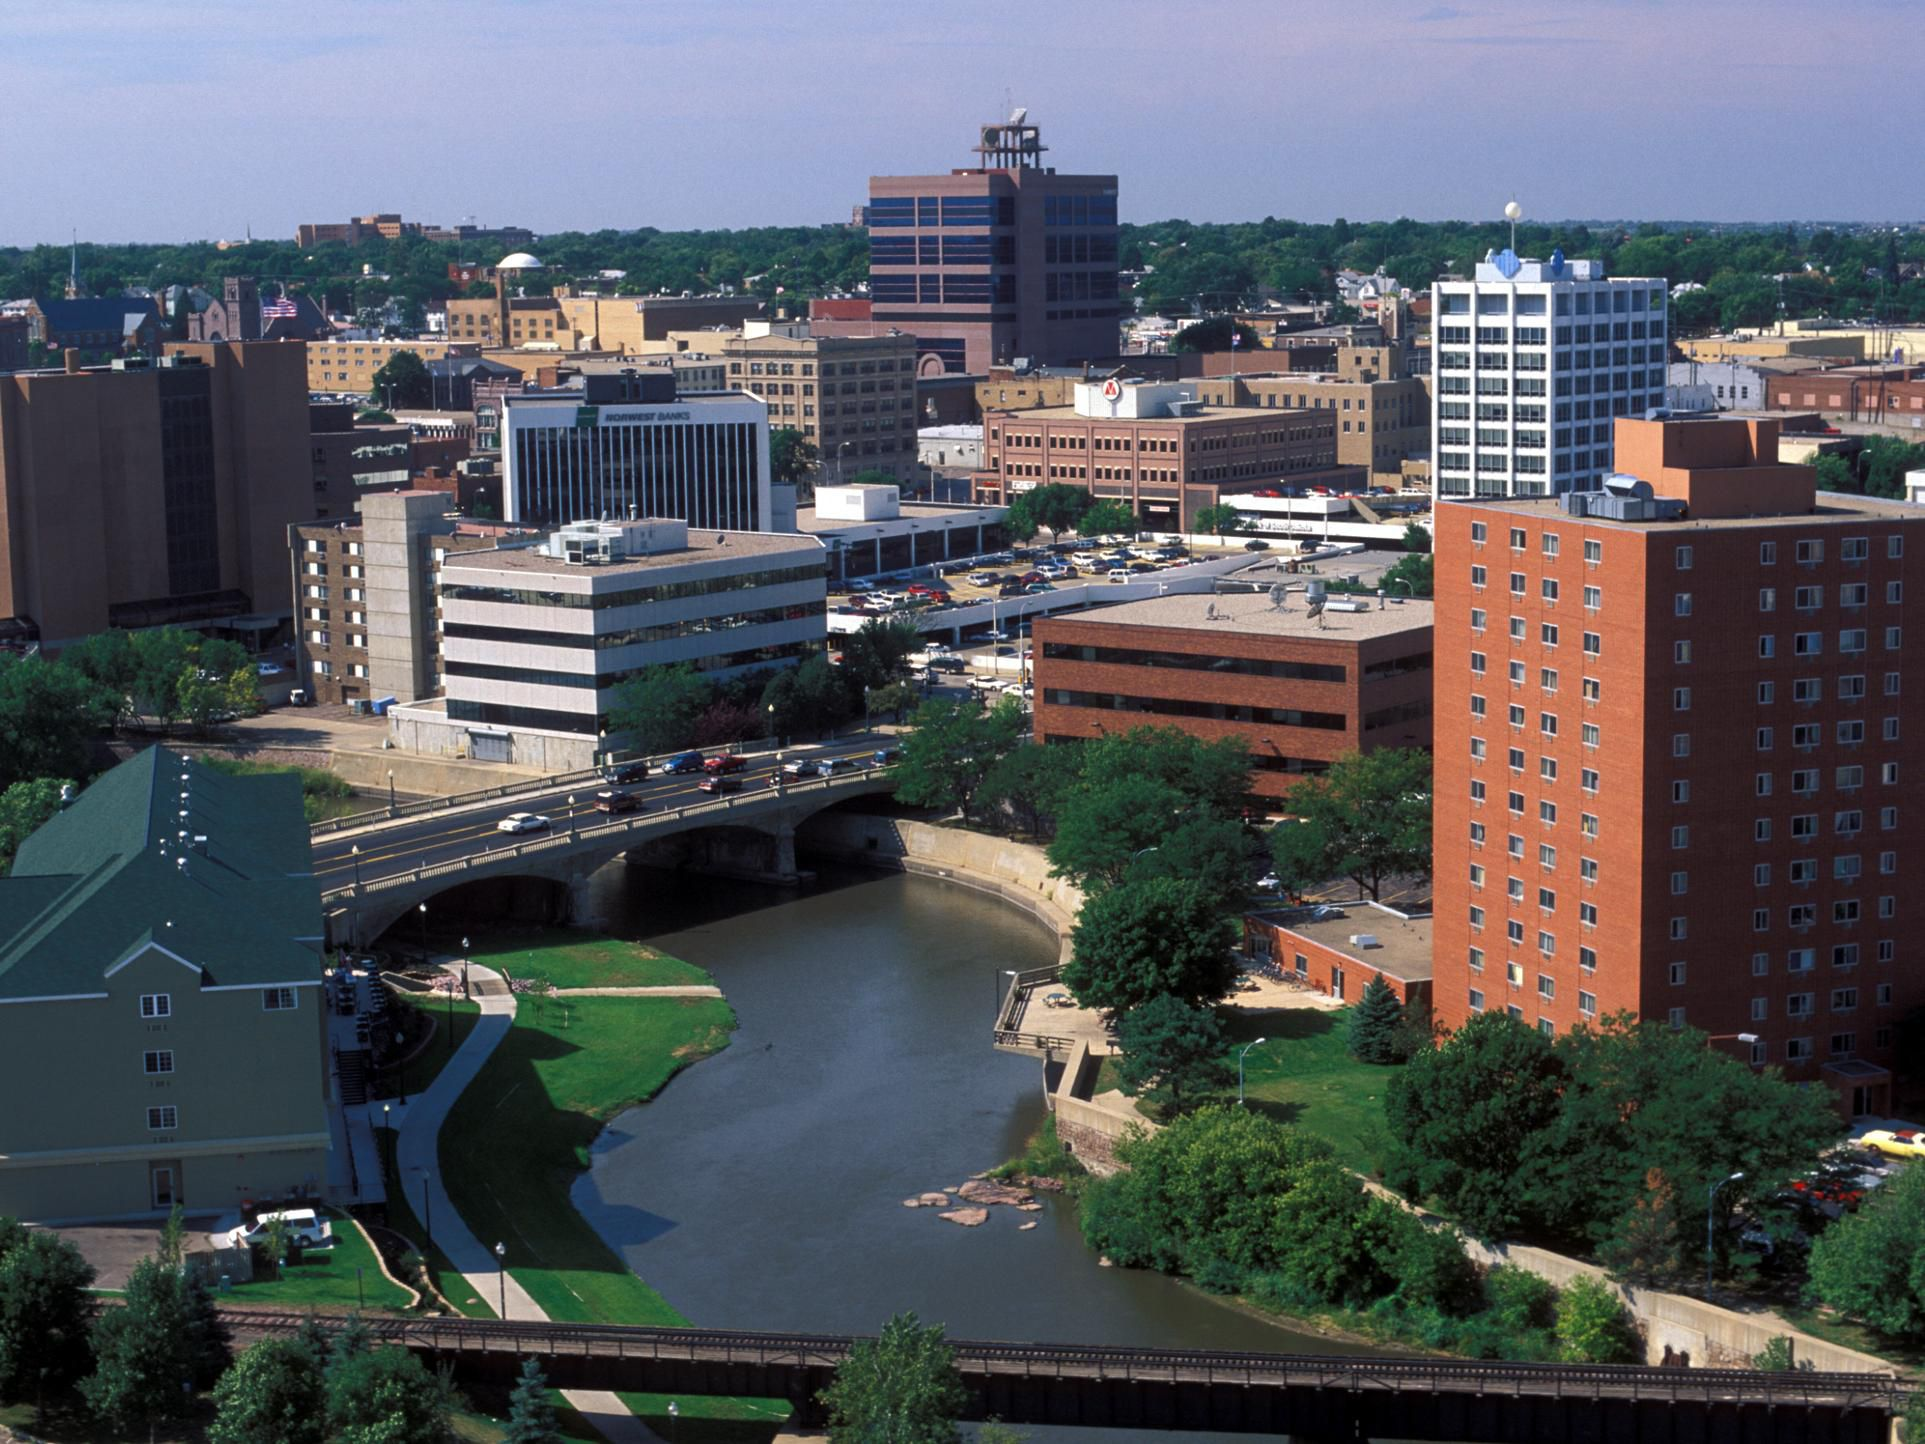 Downtwon Sioux Falls